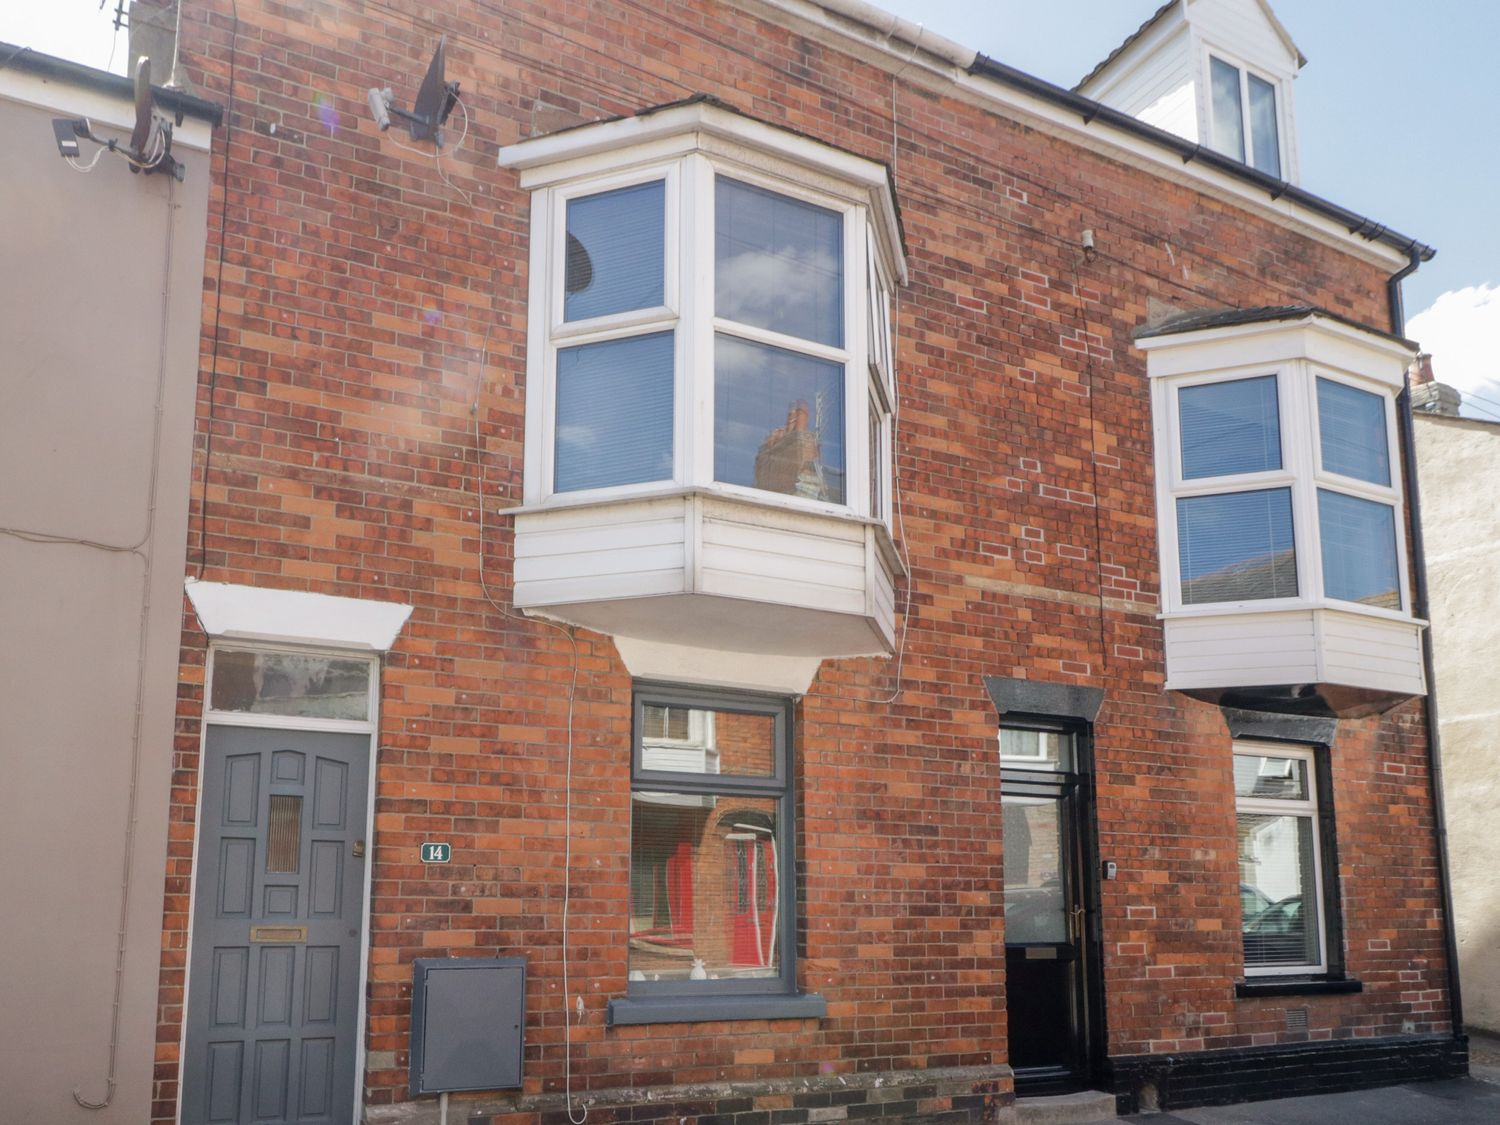 15 Hardwick Street - Dorset - 1049744 - photo 1